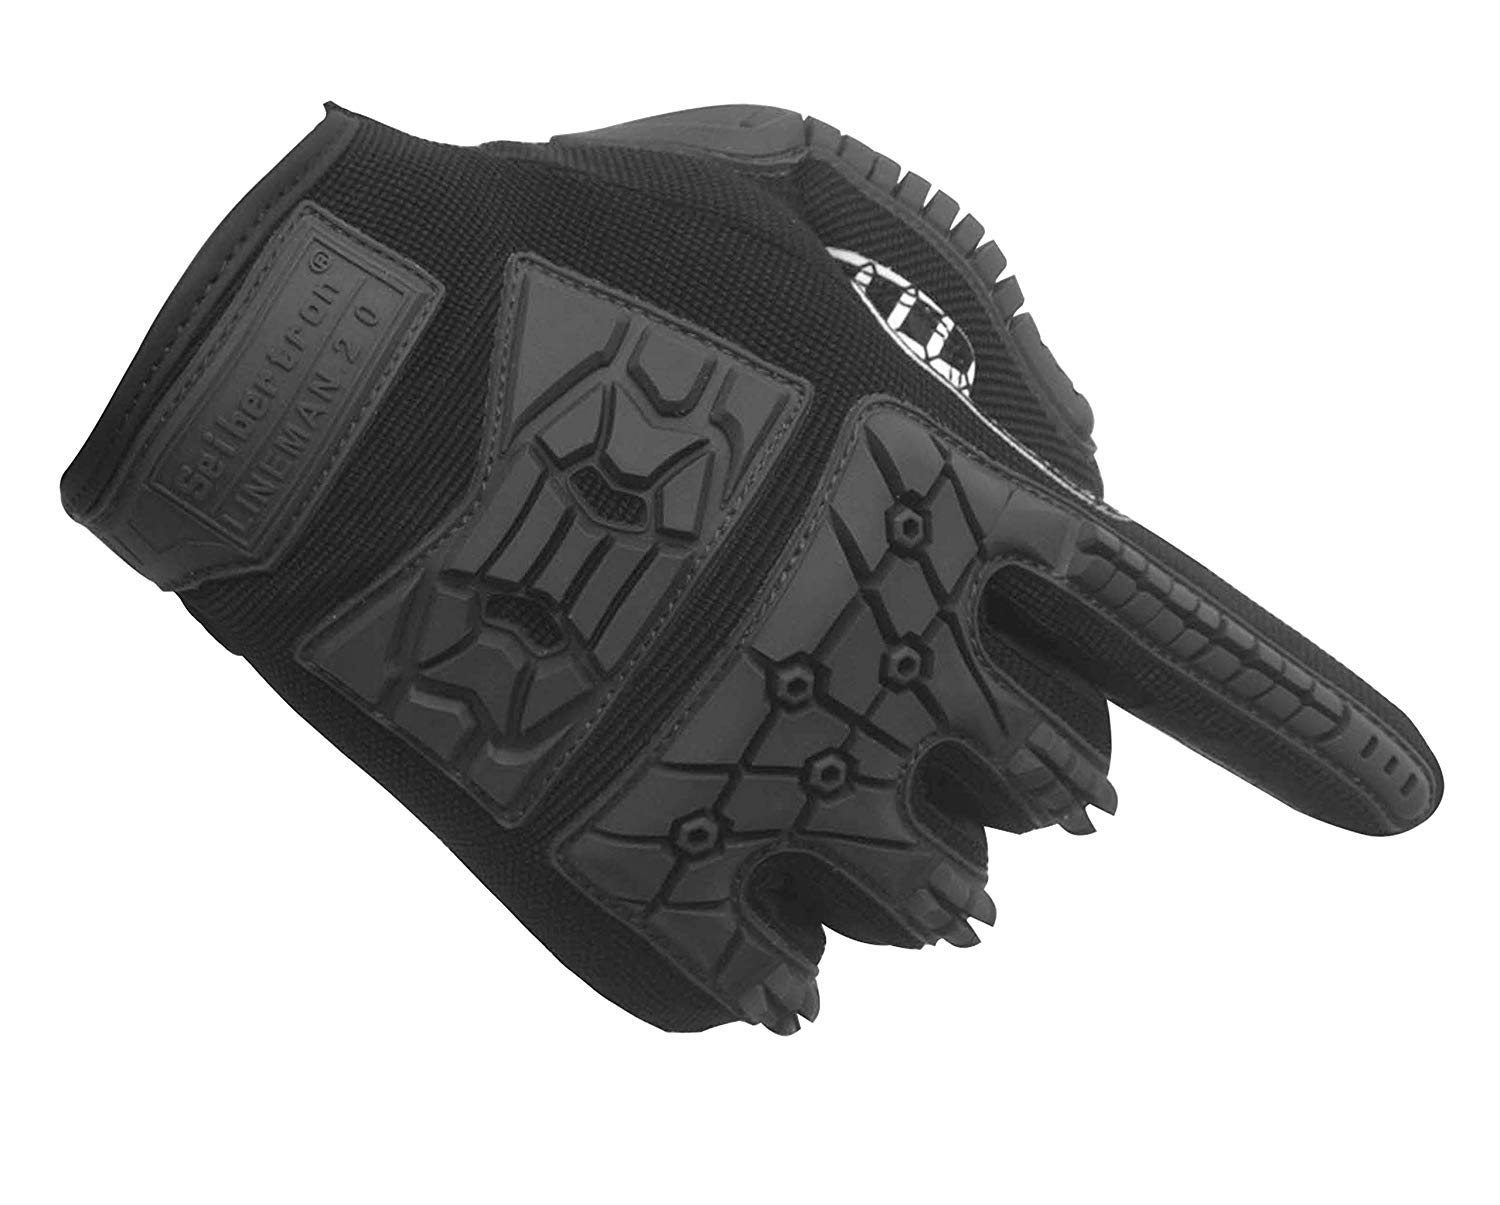 Seibertron Lineman 2.0 Padded Palm Football Receiver Gloves Flexible TPR Impact Protection Back of Hand Glove Adult Sizes